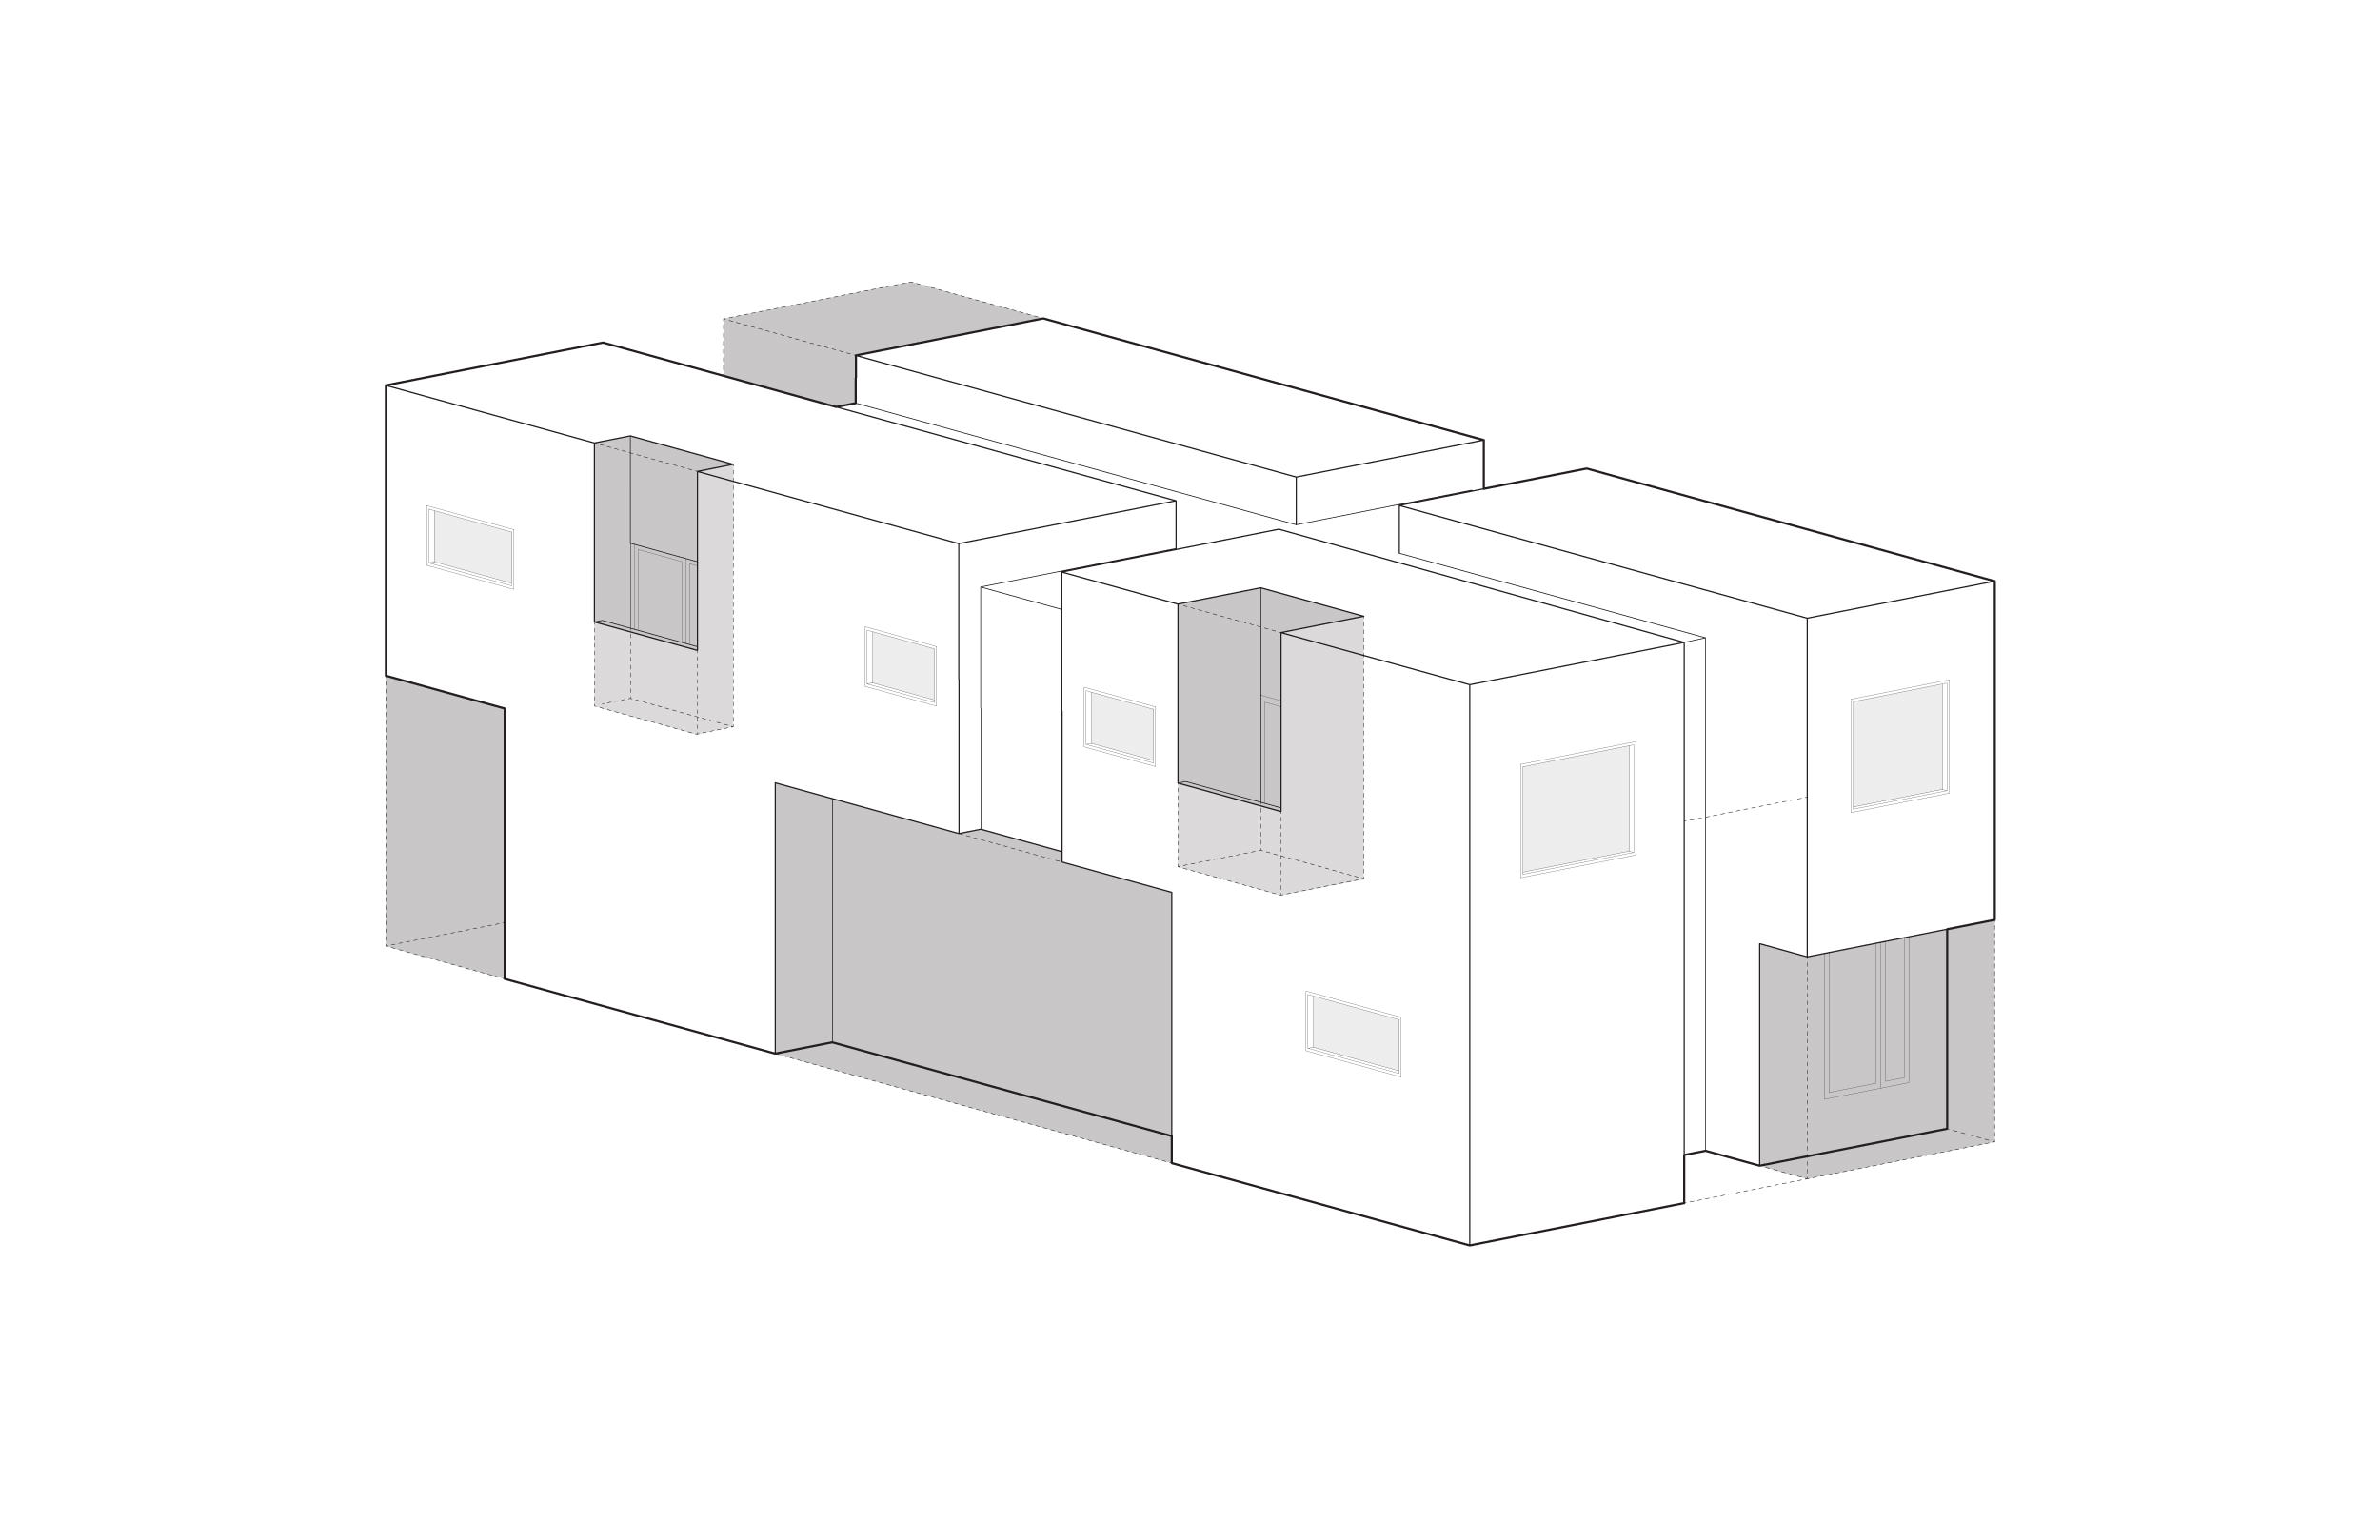 Balconies where subtracted from each of the quadrants to give the bedrooms private outdoor spaces. The larger subtraction on the ground floor marks the front door.